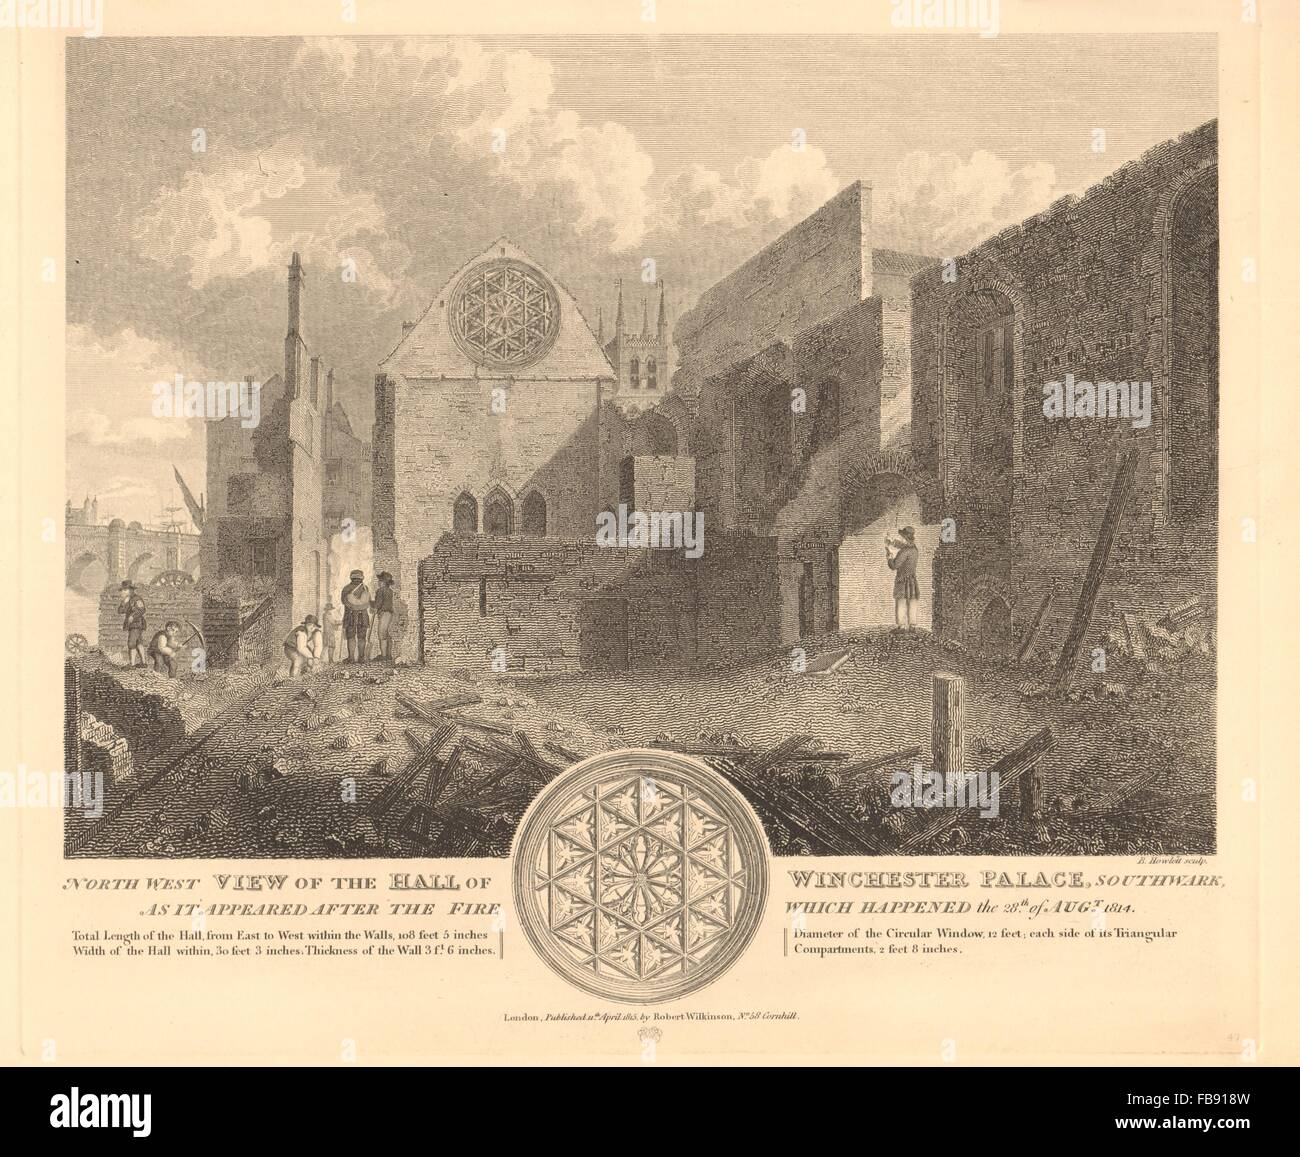 WINCHESTER PALACE HALL, SOUTHWARK. After the 1814 fire. Clink Street, 1834 - Stock Image